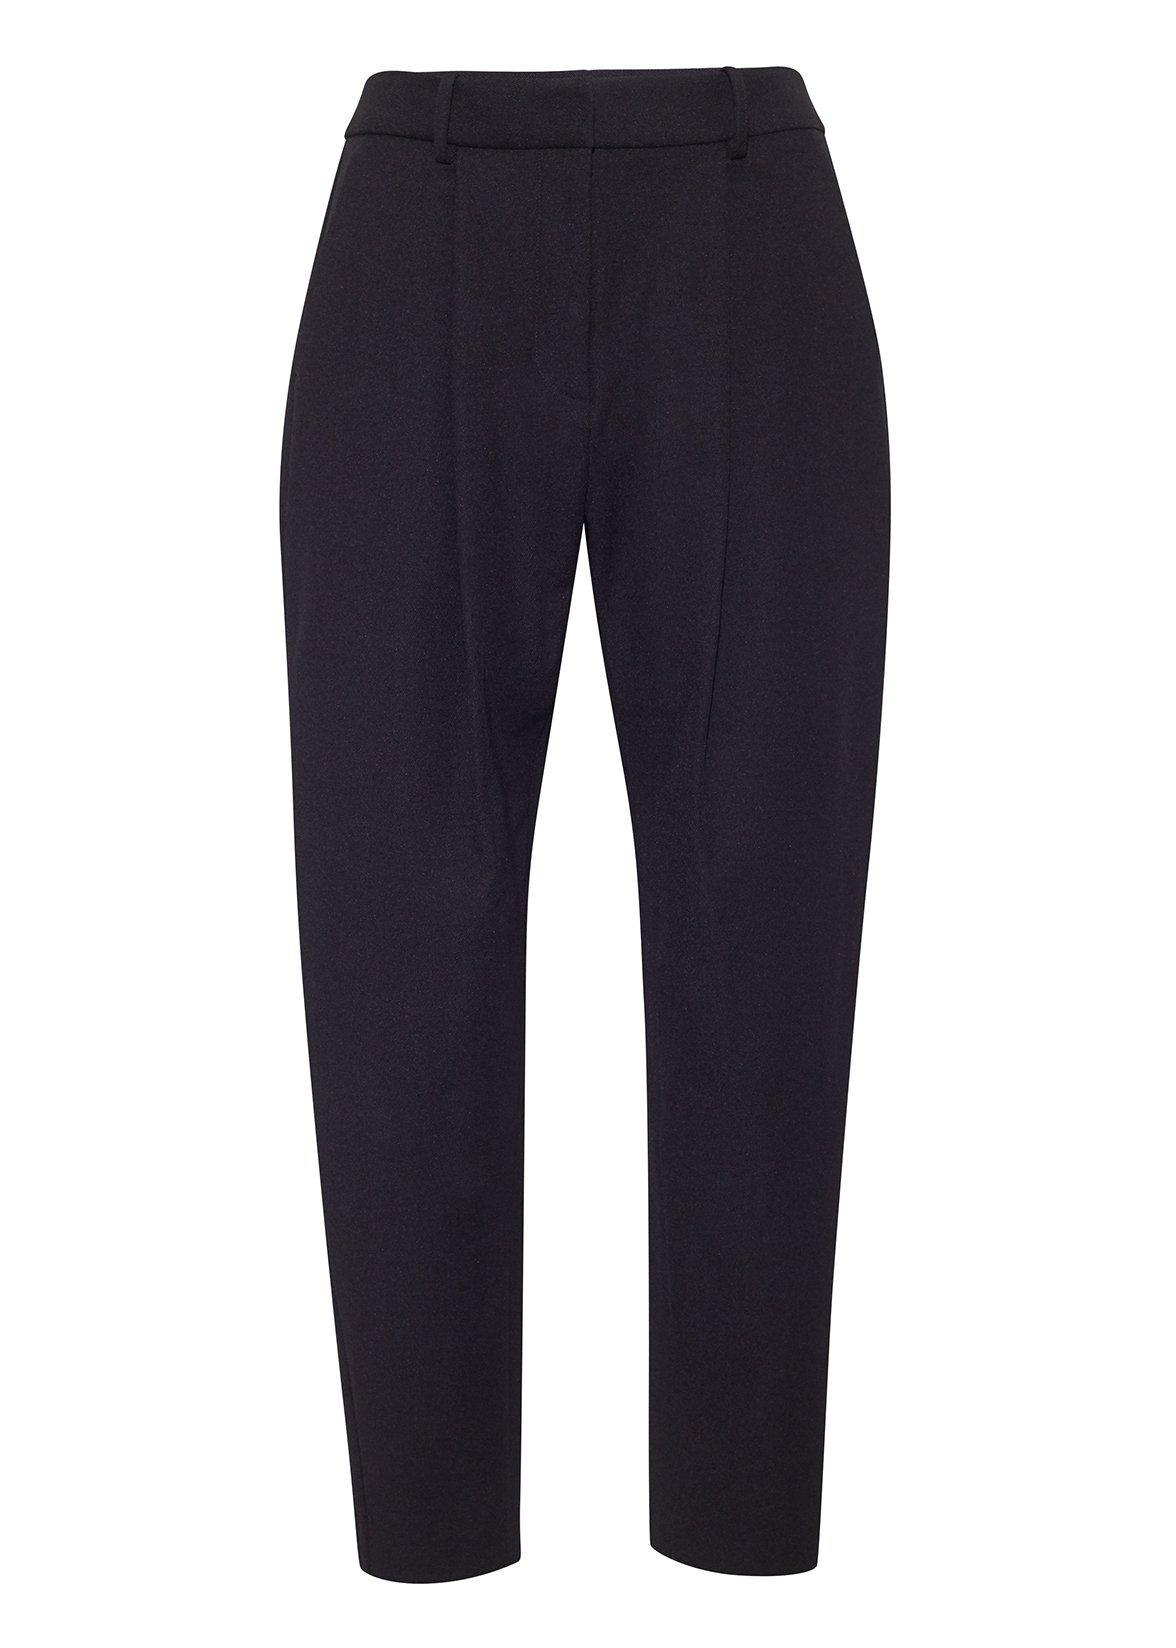 TAPERED PANT IN SUPER FINE WOOL 1